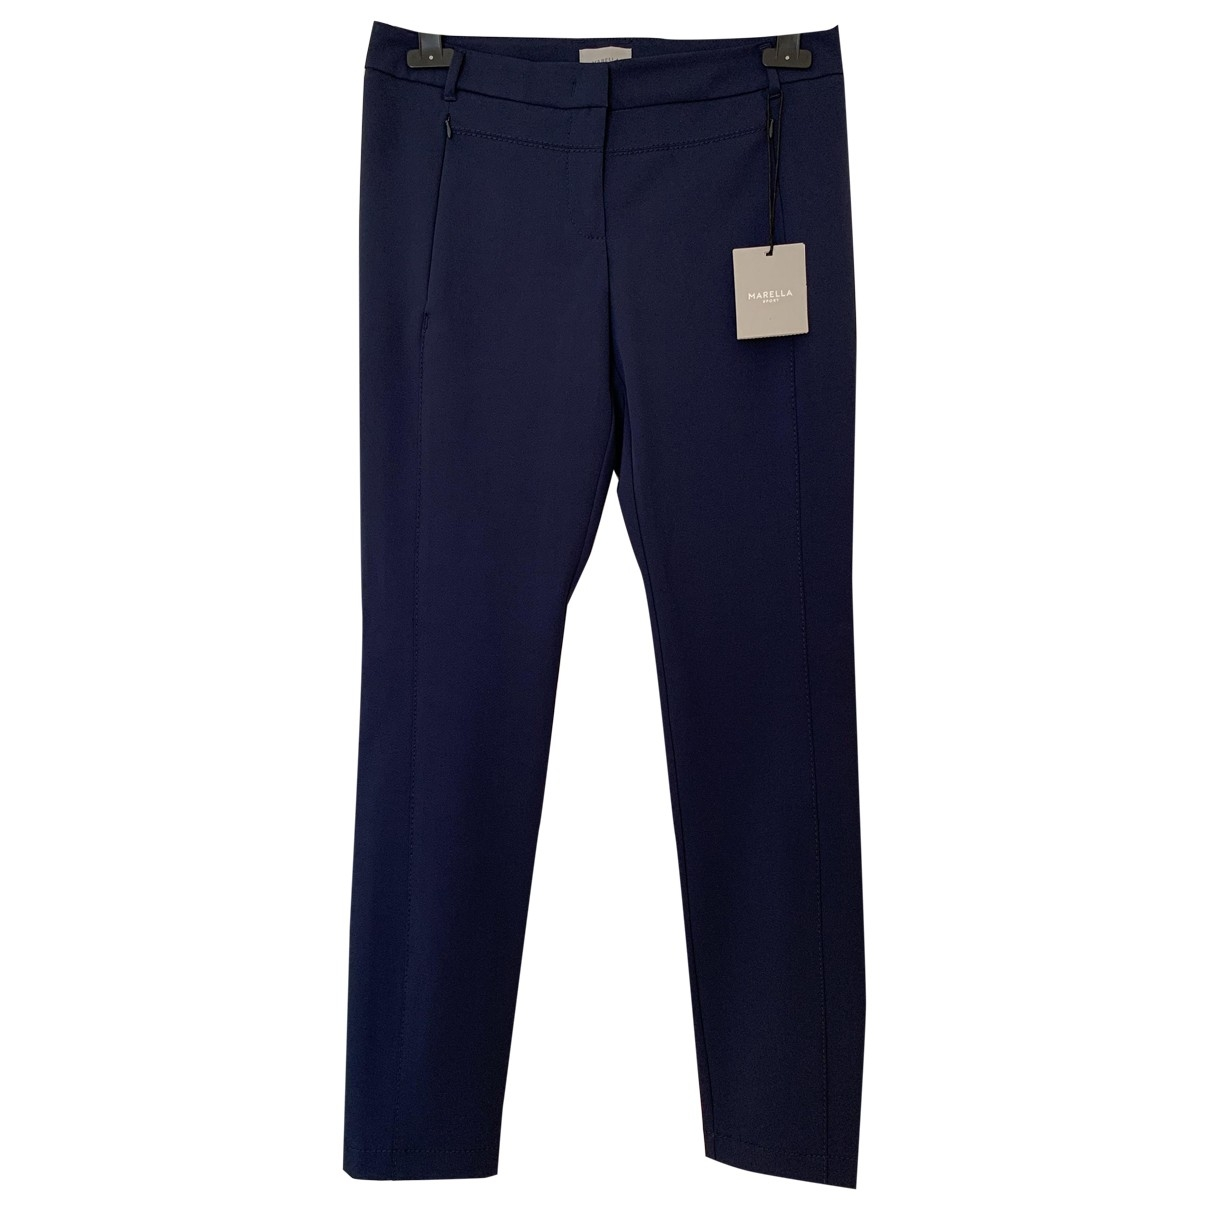 Marella \N Blue Trousers for Women 36 FR